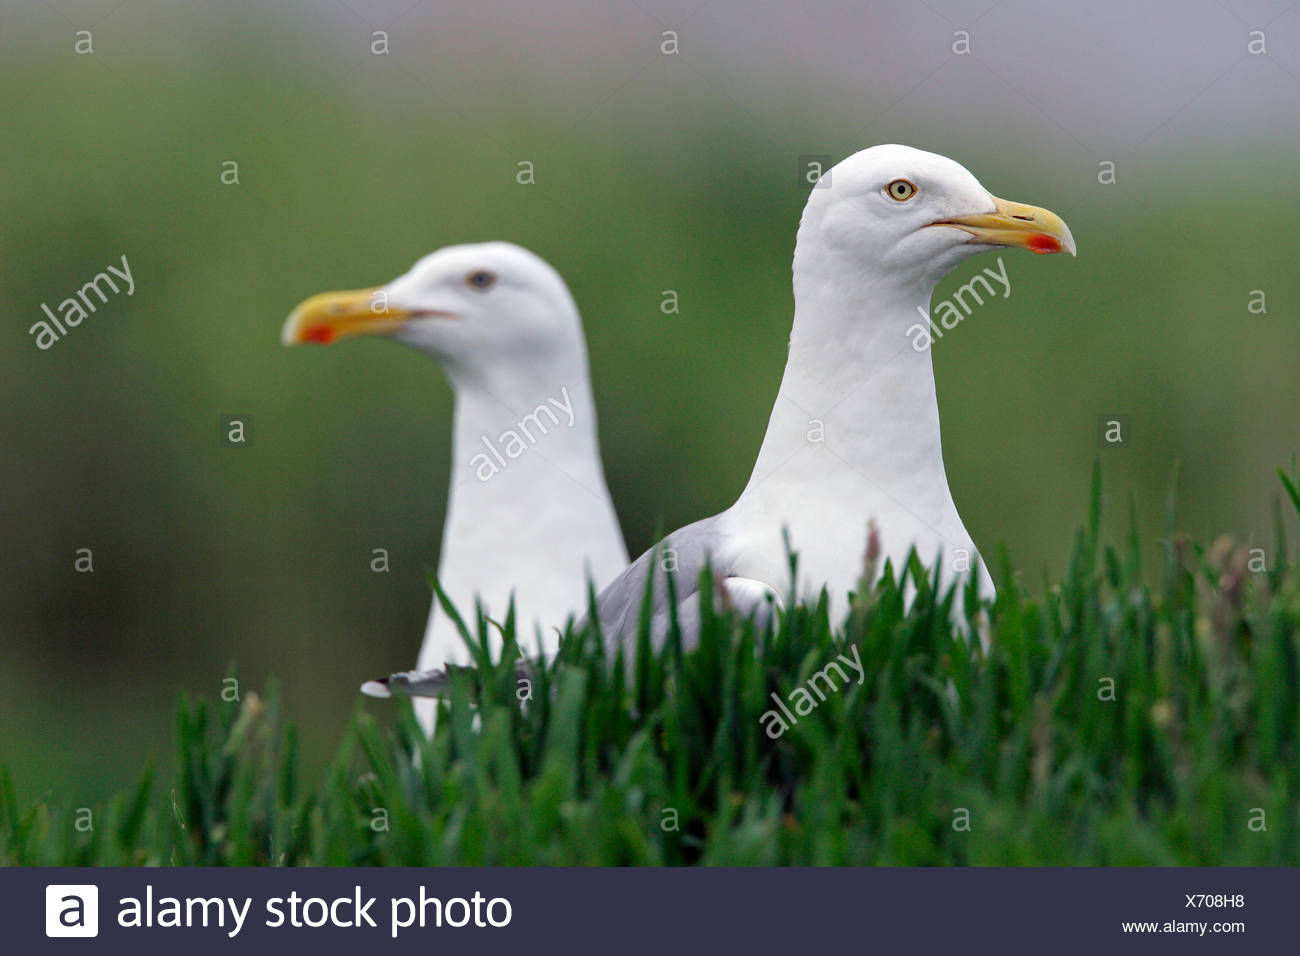 Herring gull – pair of herring gulls (Larus argentatus) Stock Photo